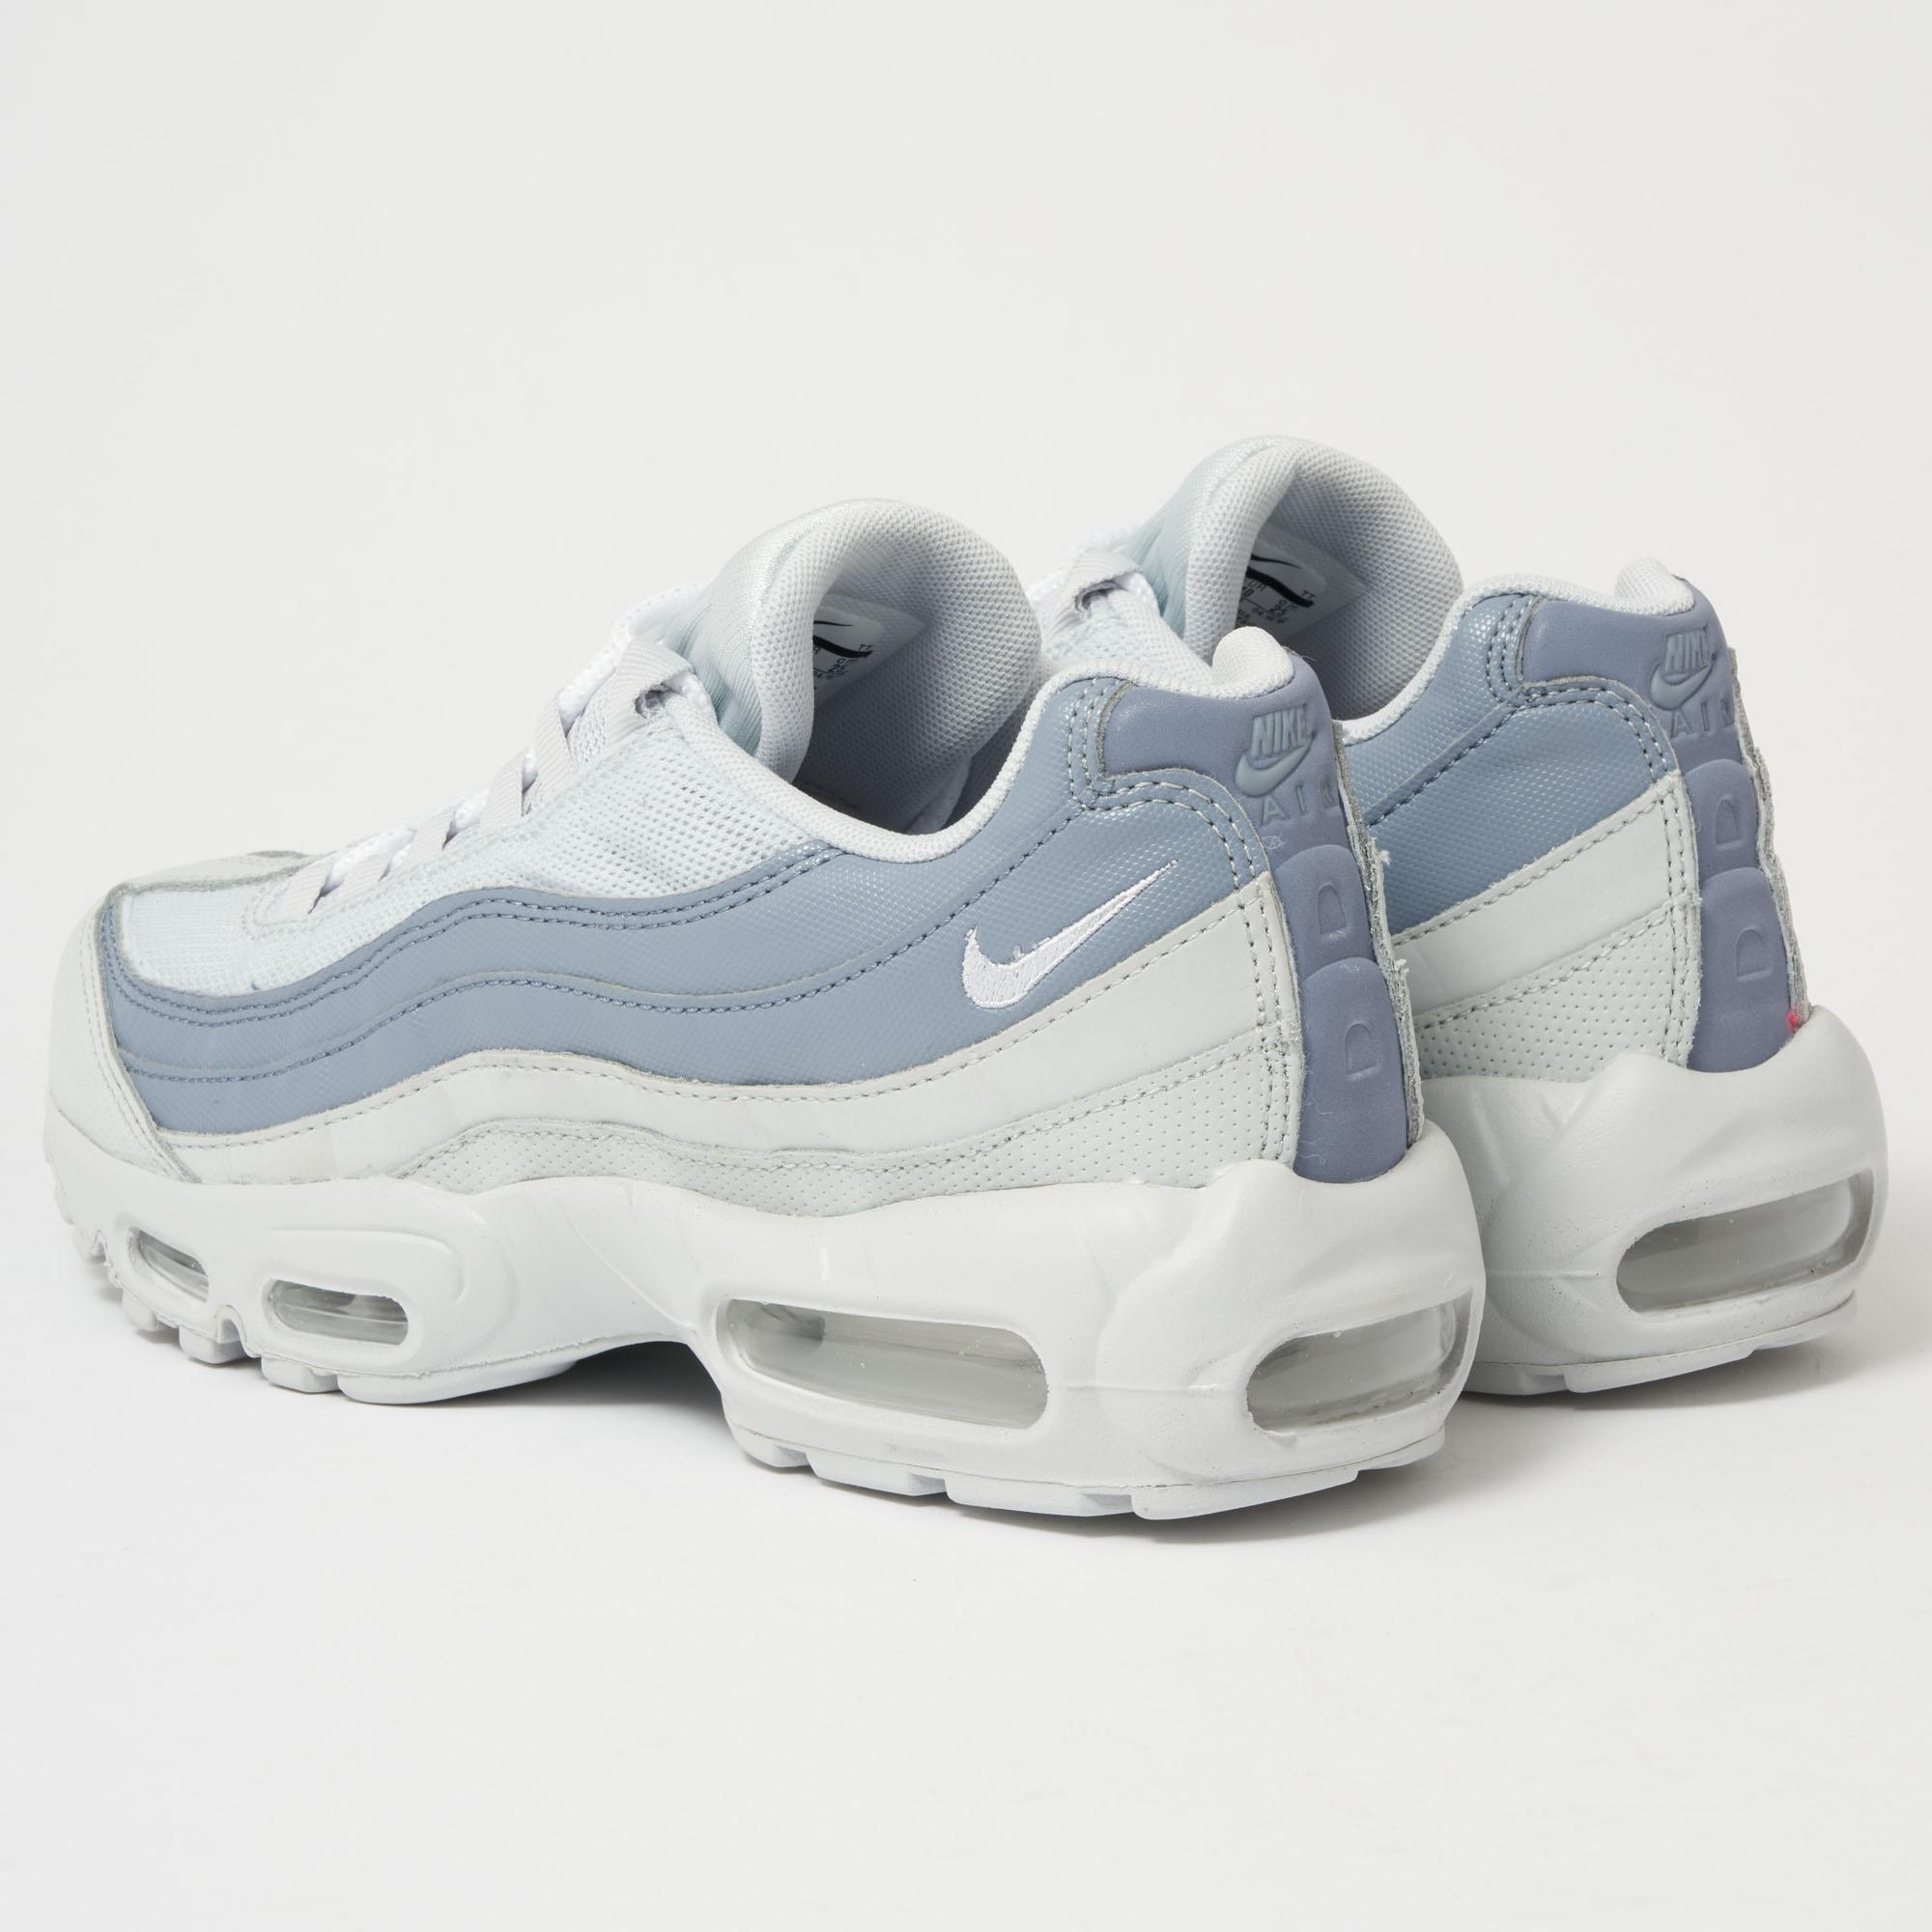 discount code for wmns air max 95 hvid hvid pure platinum